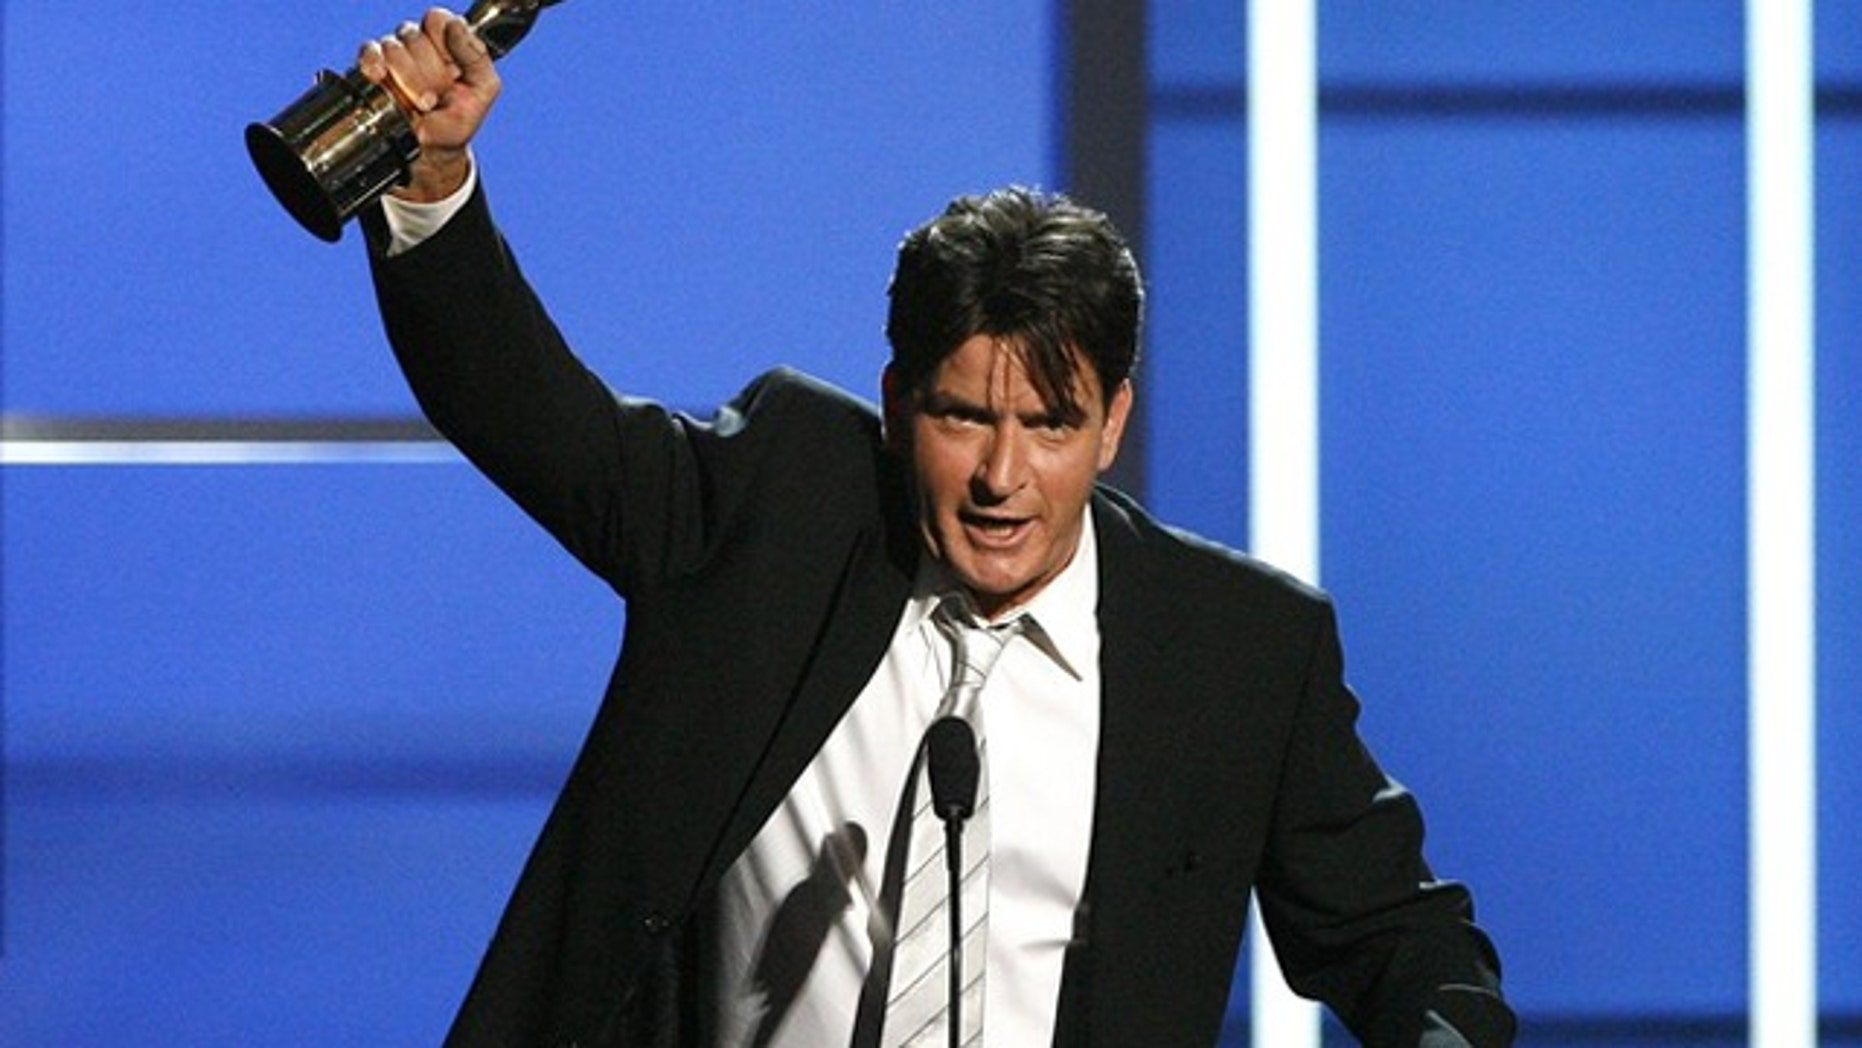 More popular than Obama, Lady Gaga and even the new iPad, Charlie Sheen is 'winning' the Internet.